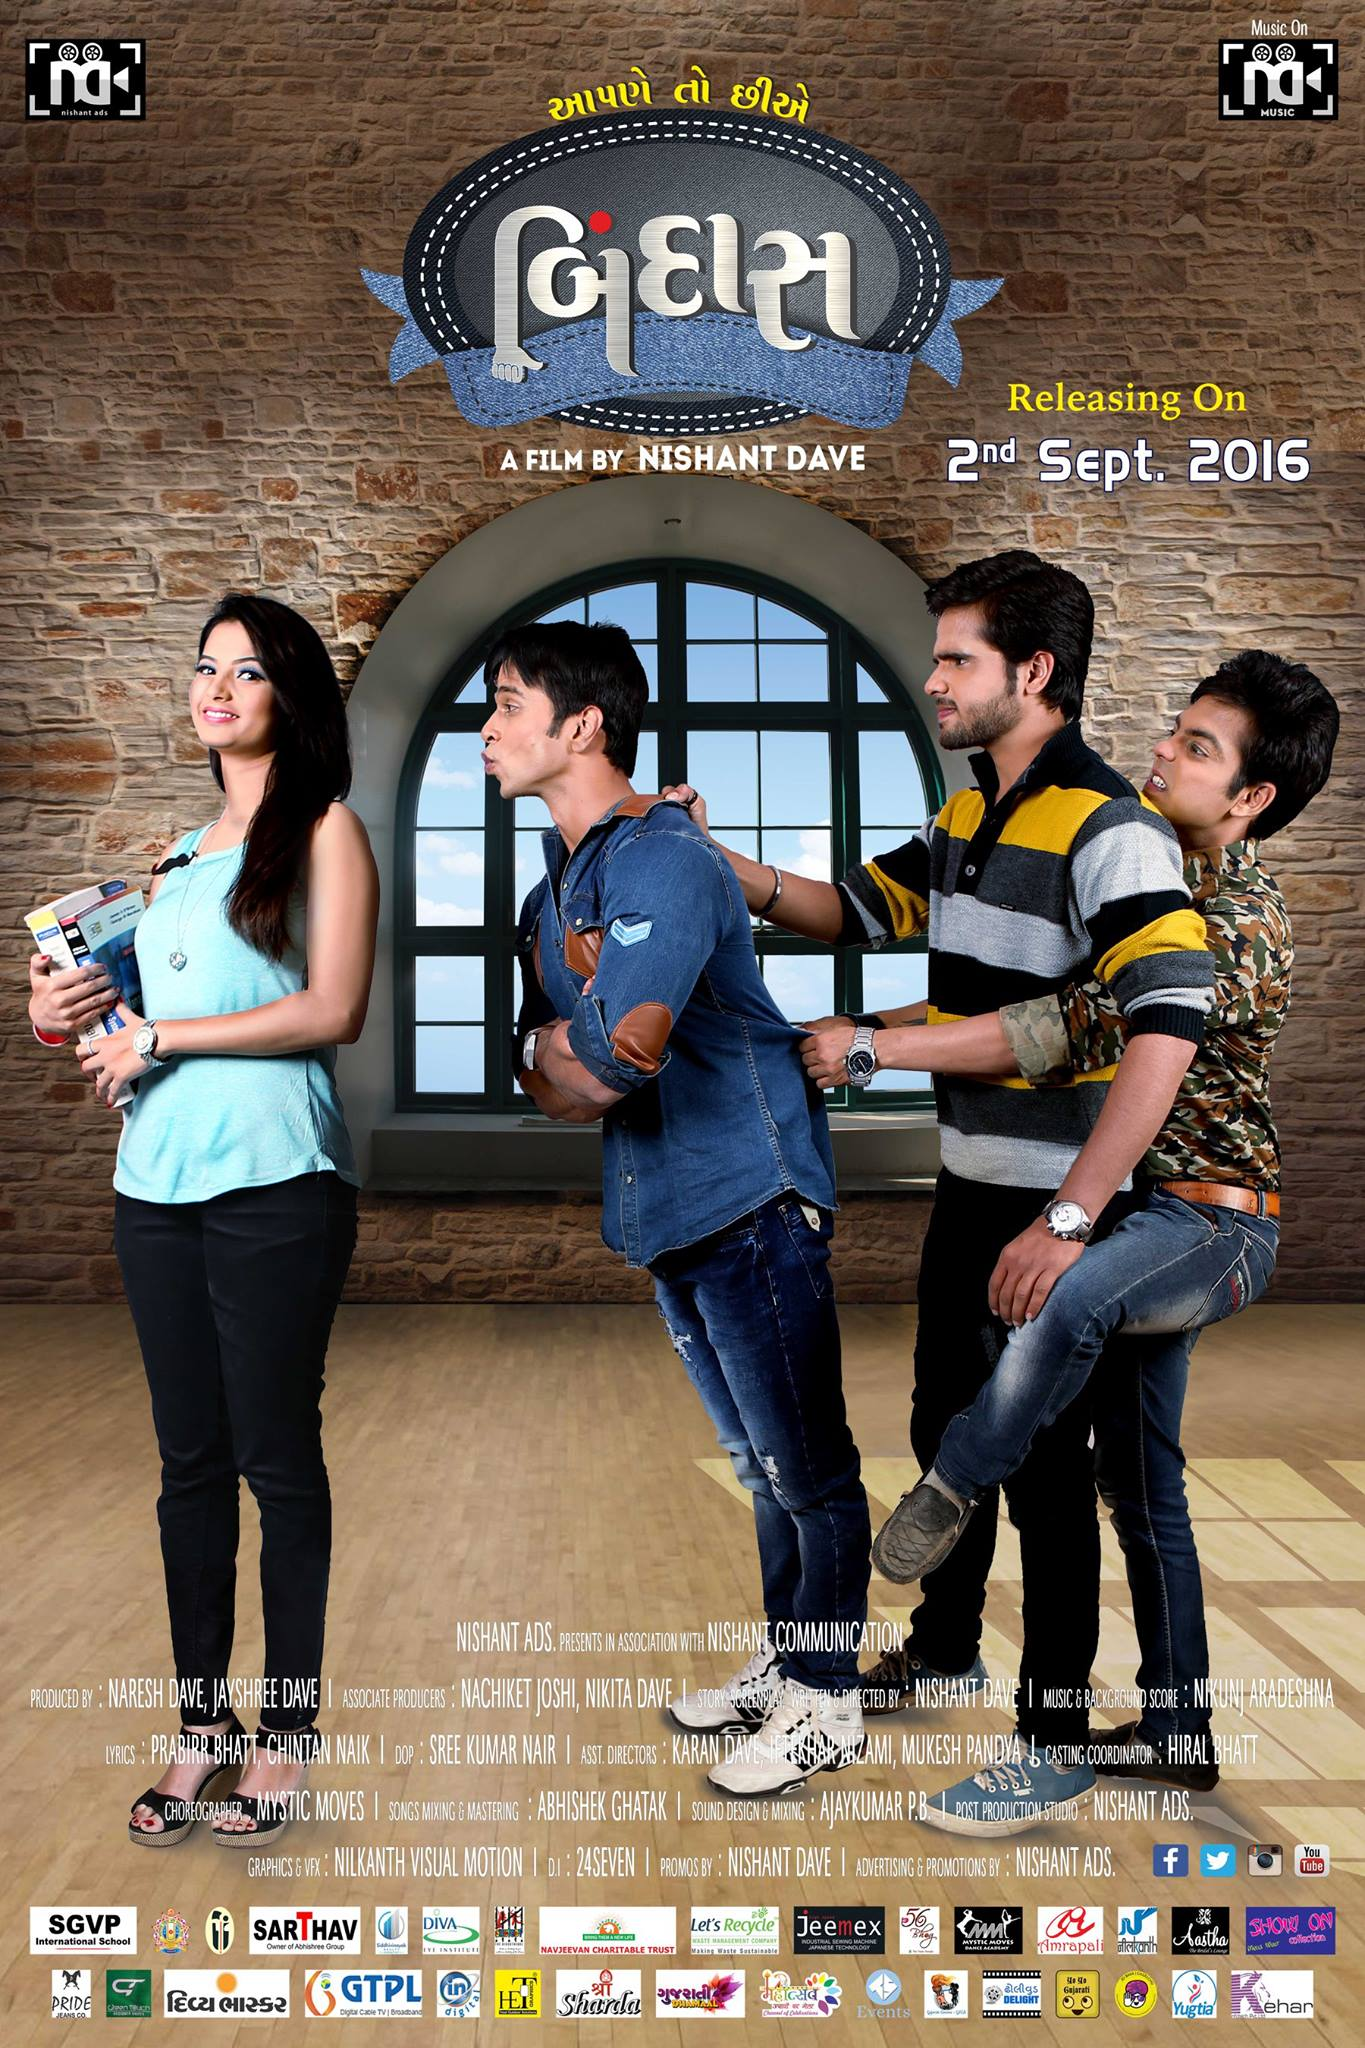 Aapne Toh Chhie Bindaas 2016 Gujarati 720p HDRip ESubs 1.2GB Download